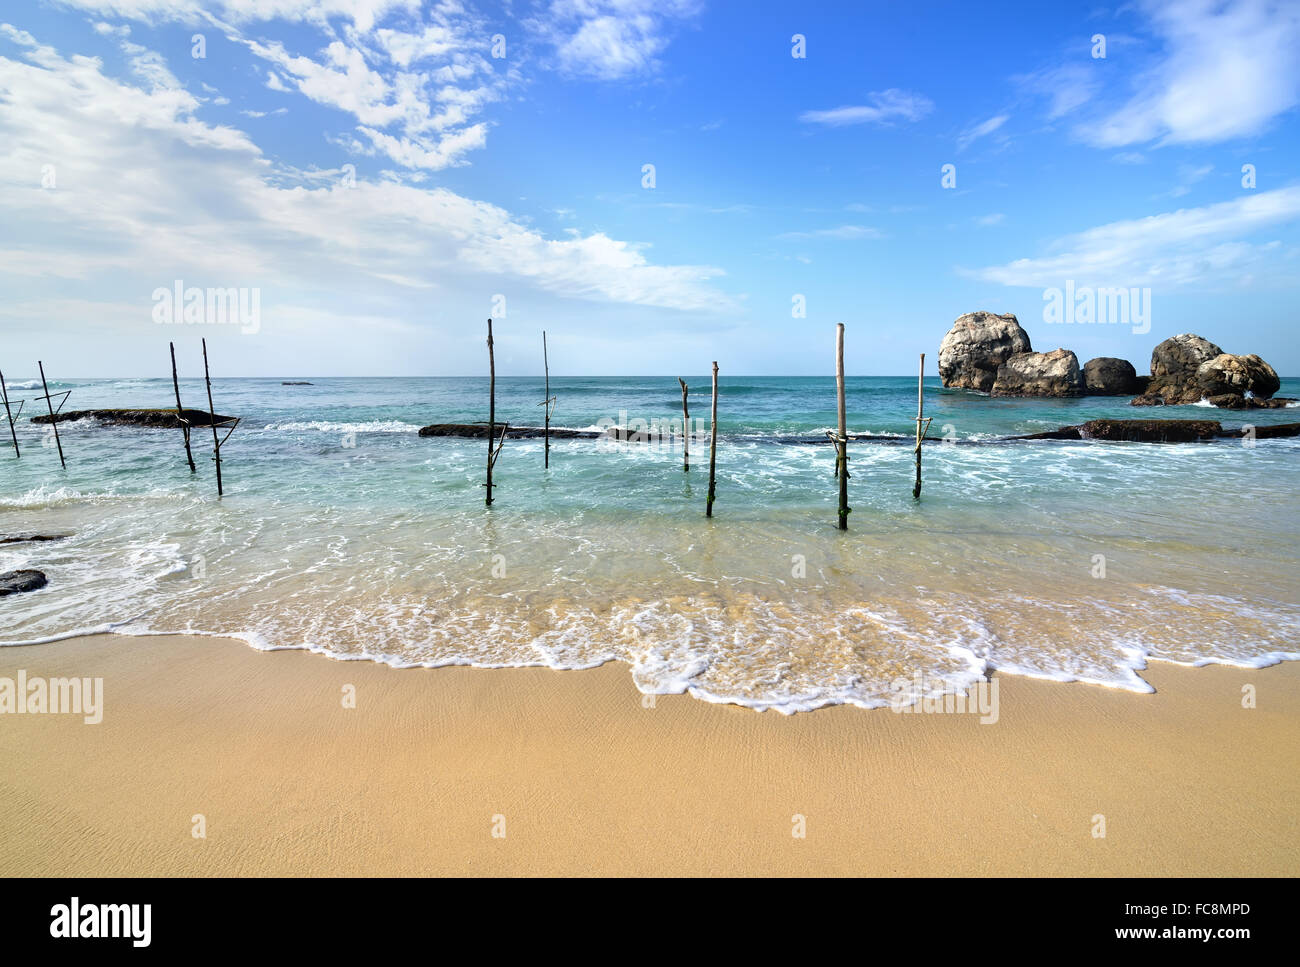 Wooden poles for fishing on a beach of indian ocean in Sri Lanka - Stock Image